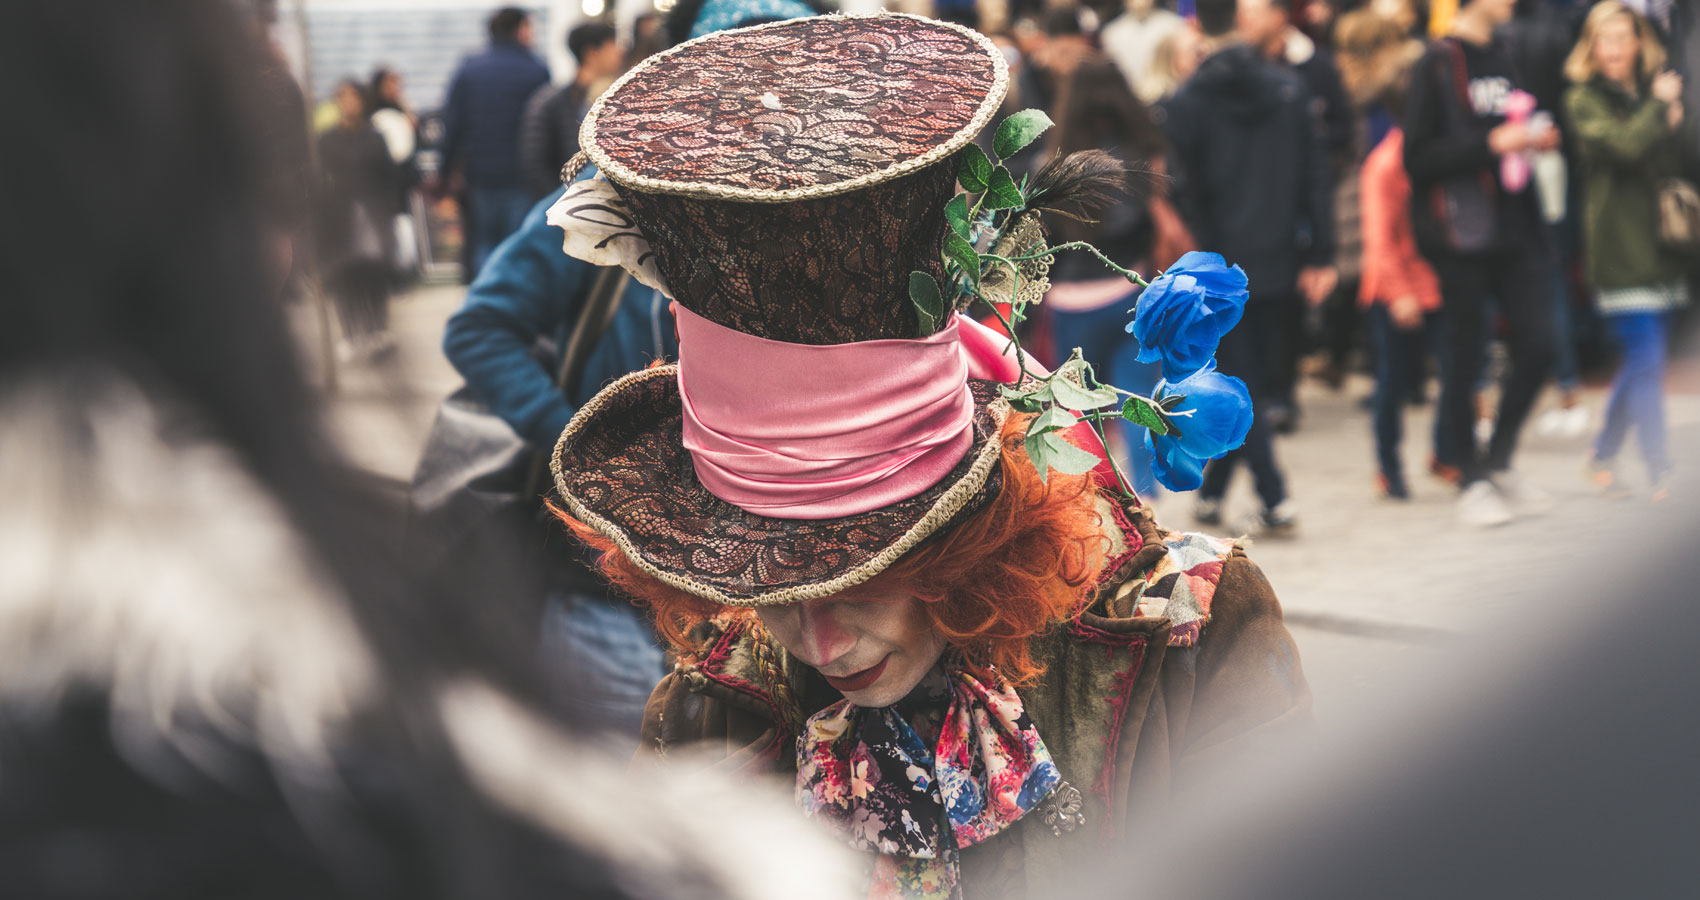 The Hatter, poetry written by LFA Turppa at Spillwords.com